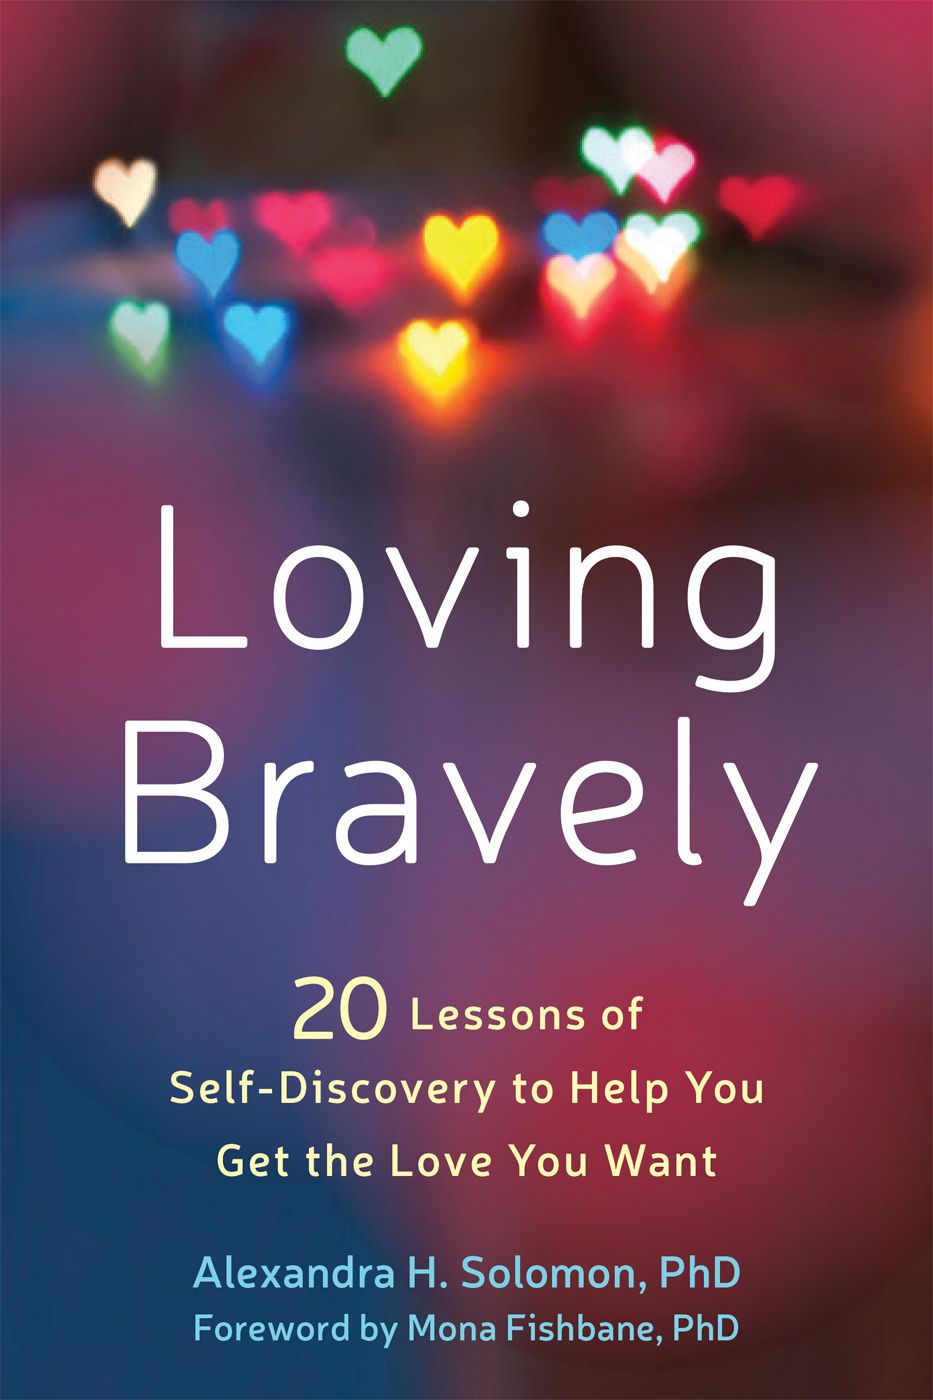 Loving-Bravely-Twenty-Lessons-of-Self-Discovery-to-Help-You-Get-the-Love-You-Want